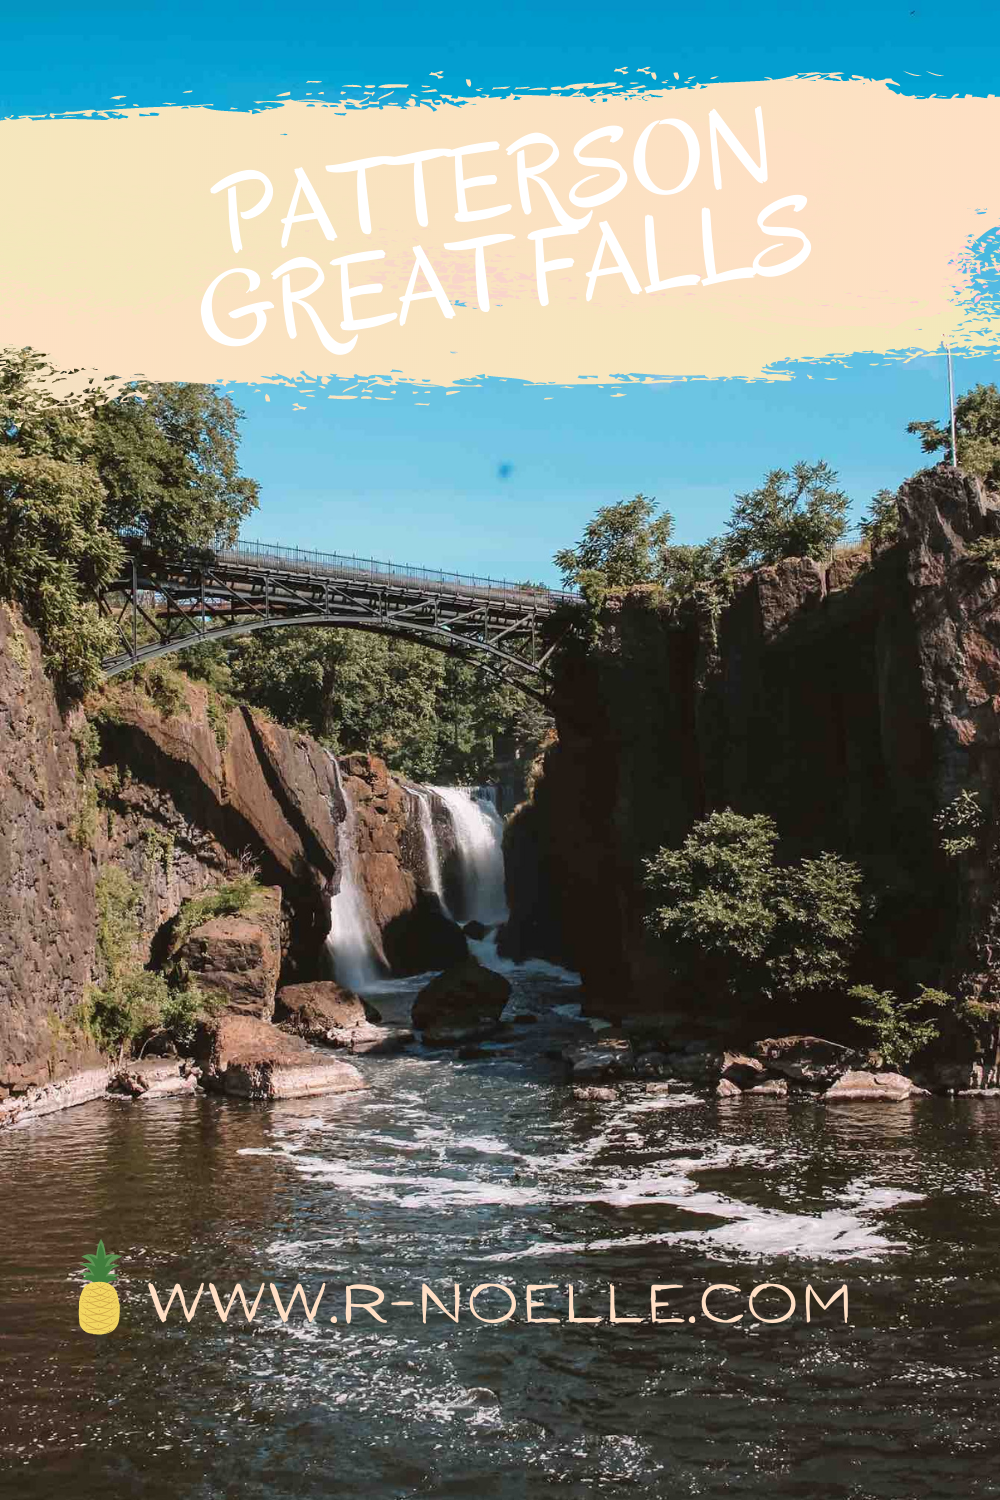 Ney Jersey has so many hidden gems. Great Falls in Patterson is part of the National Parks System and is a must visit if you're in the area! This is near the historic distric of Patterson that was once the center of the silk city.